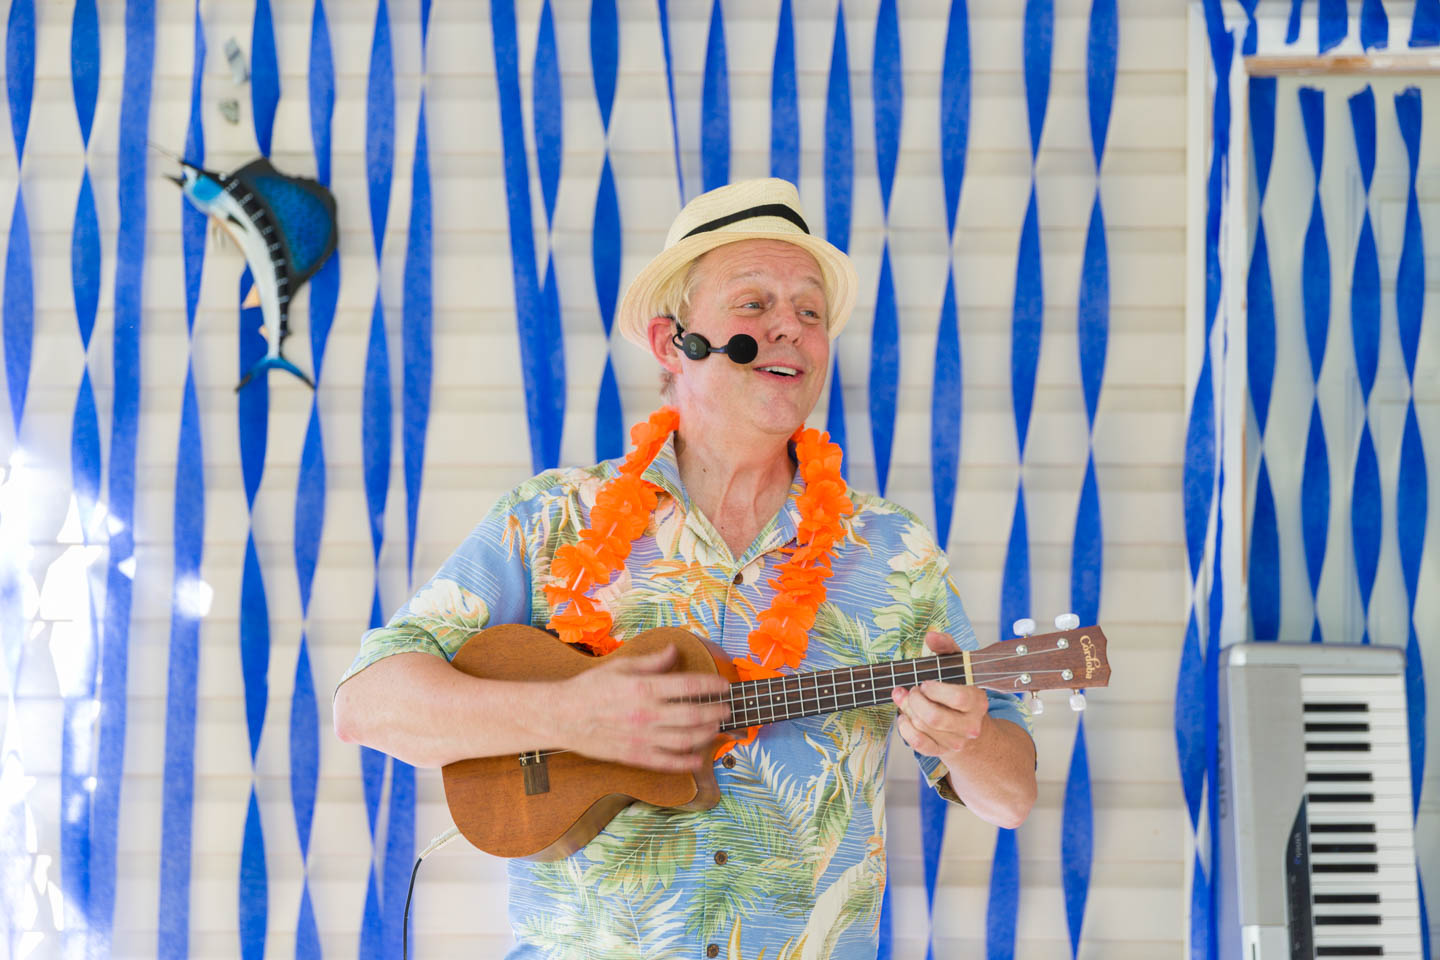 The Cabana band playing the ukulele